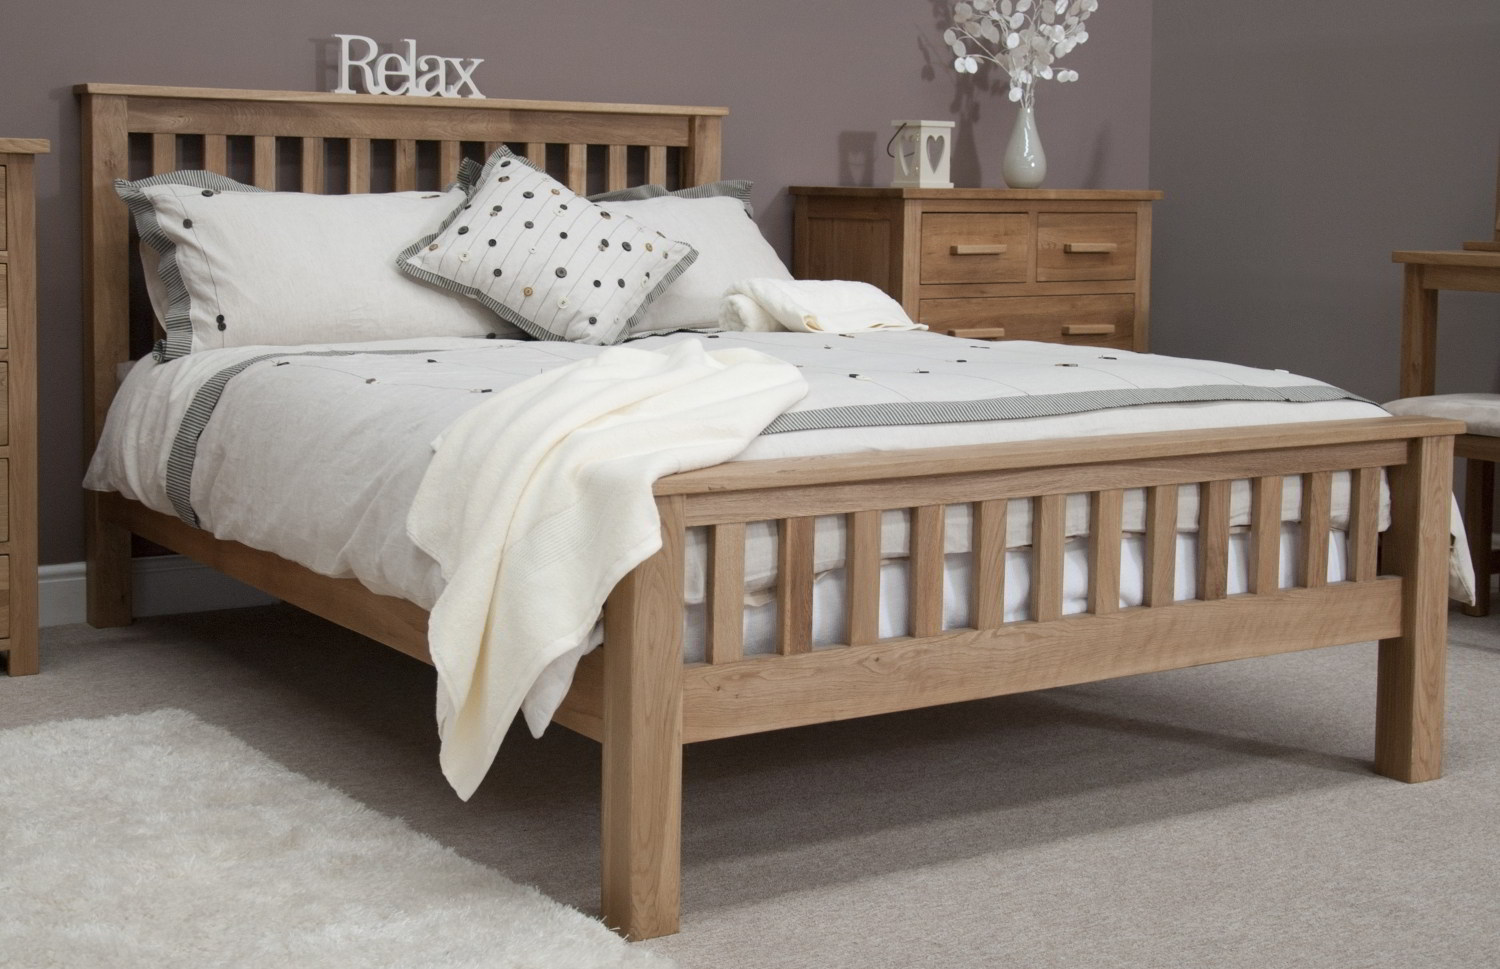 Details about Eton solid contemporary oak bedroom furniture 4\'6 double rail  end bed